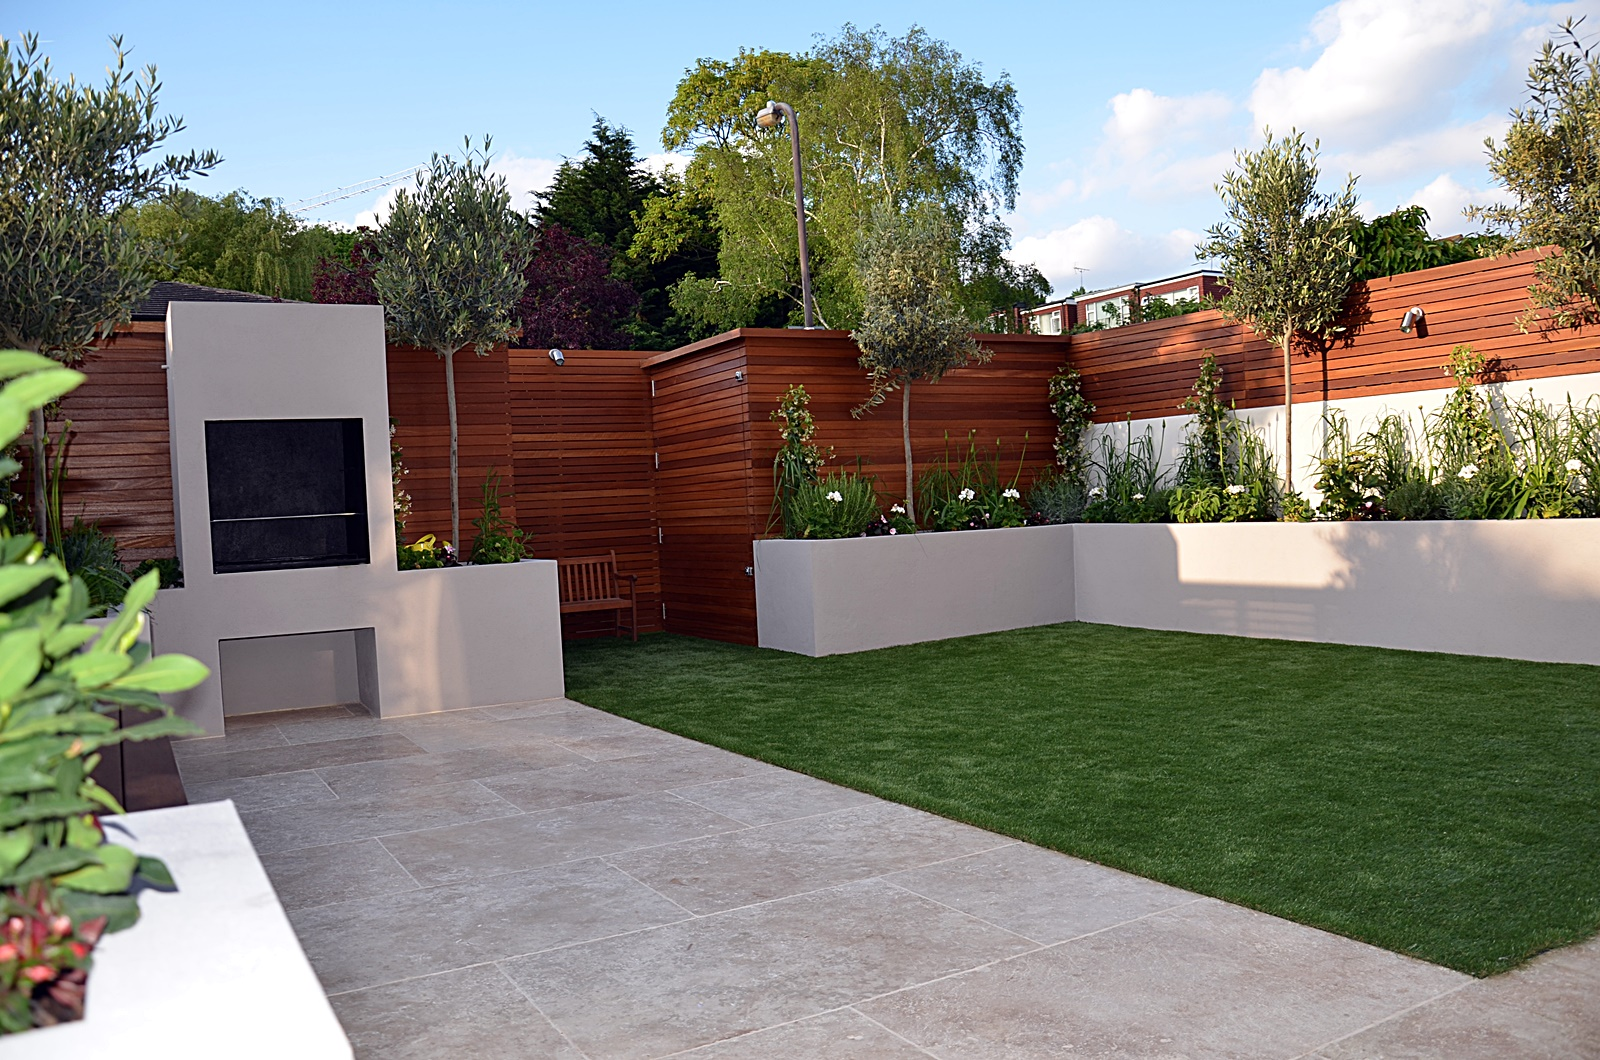 landscape modern garden design - photo #37